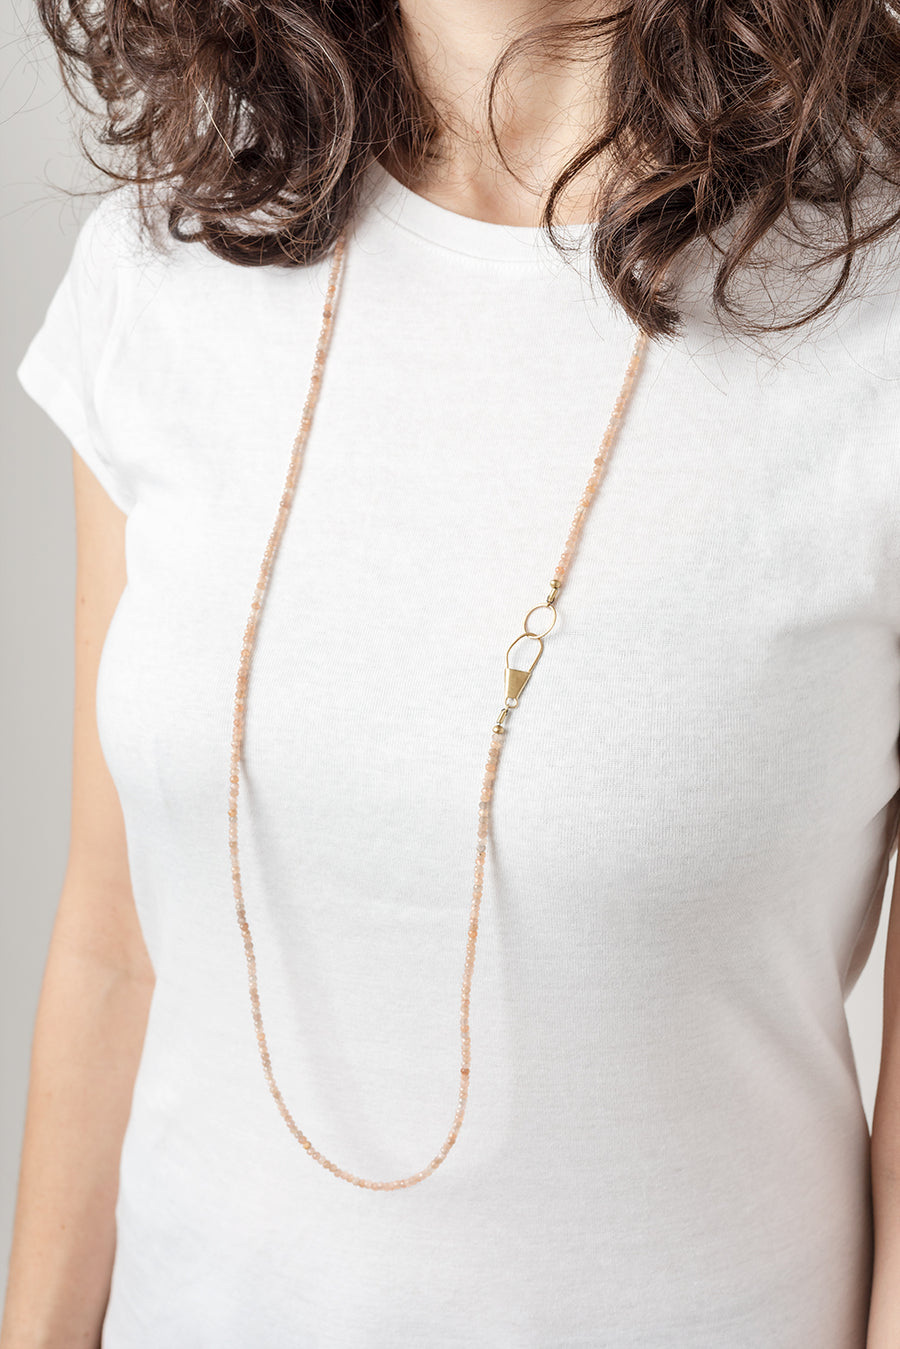 Gold Safety Pin Clasp Aquamarine Necklace